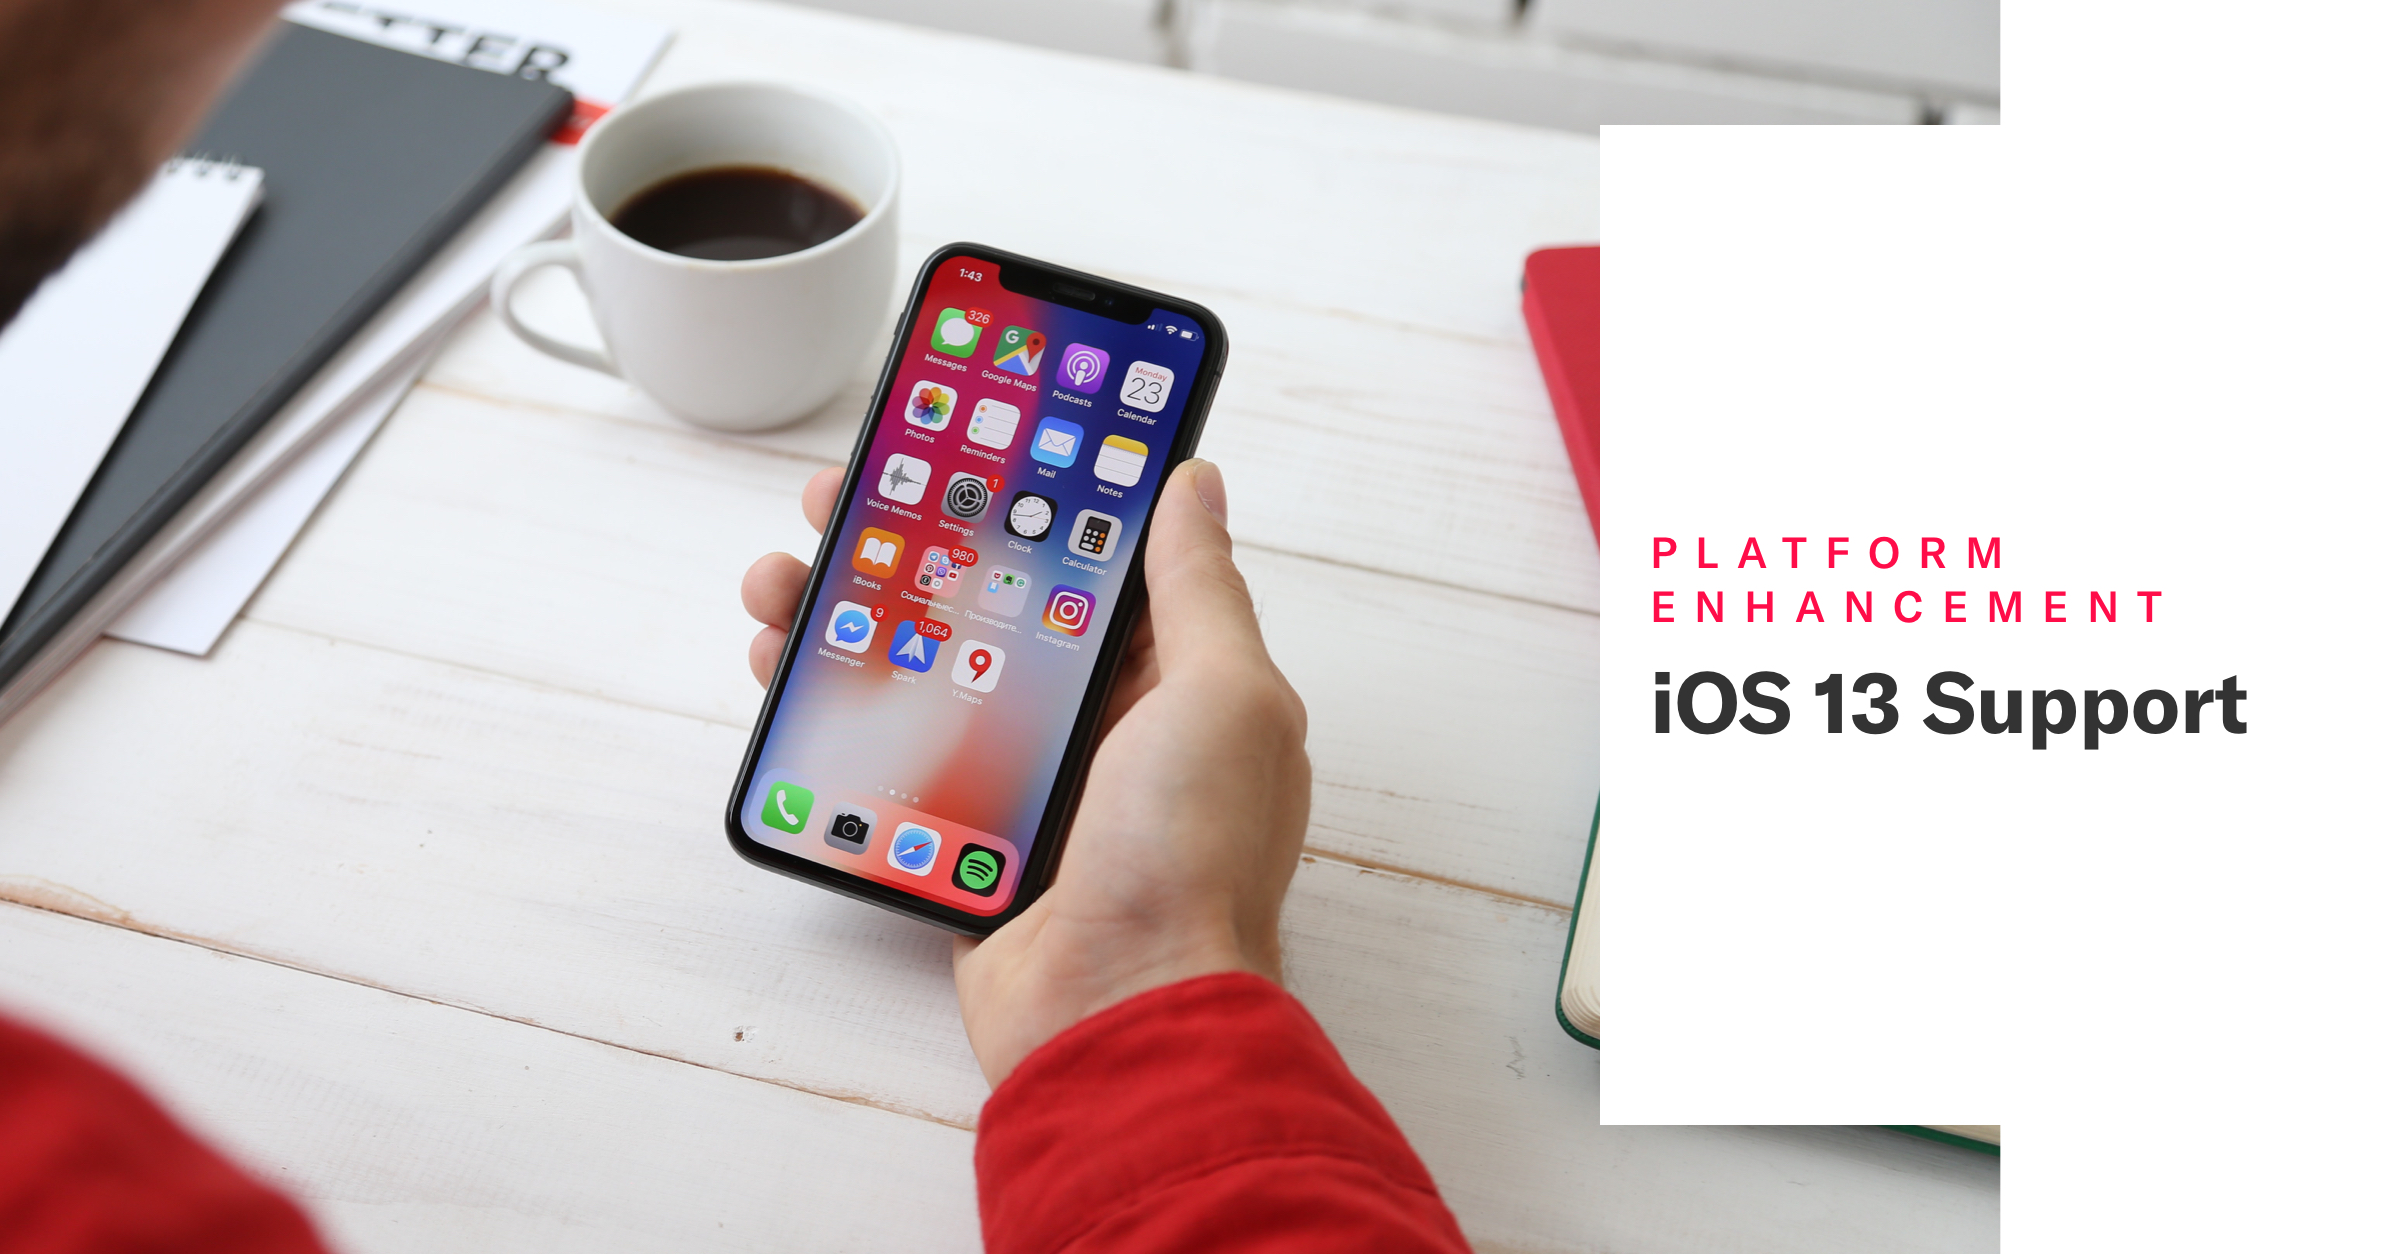 iOS 13 Support